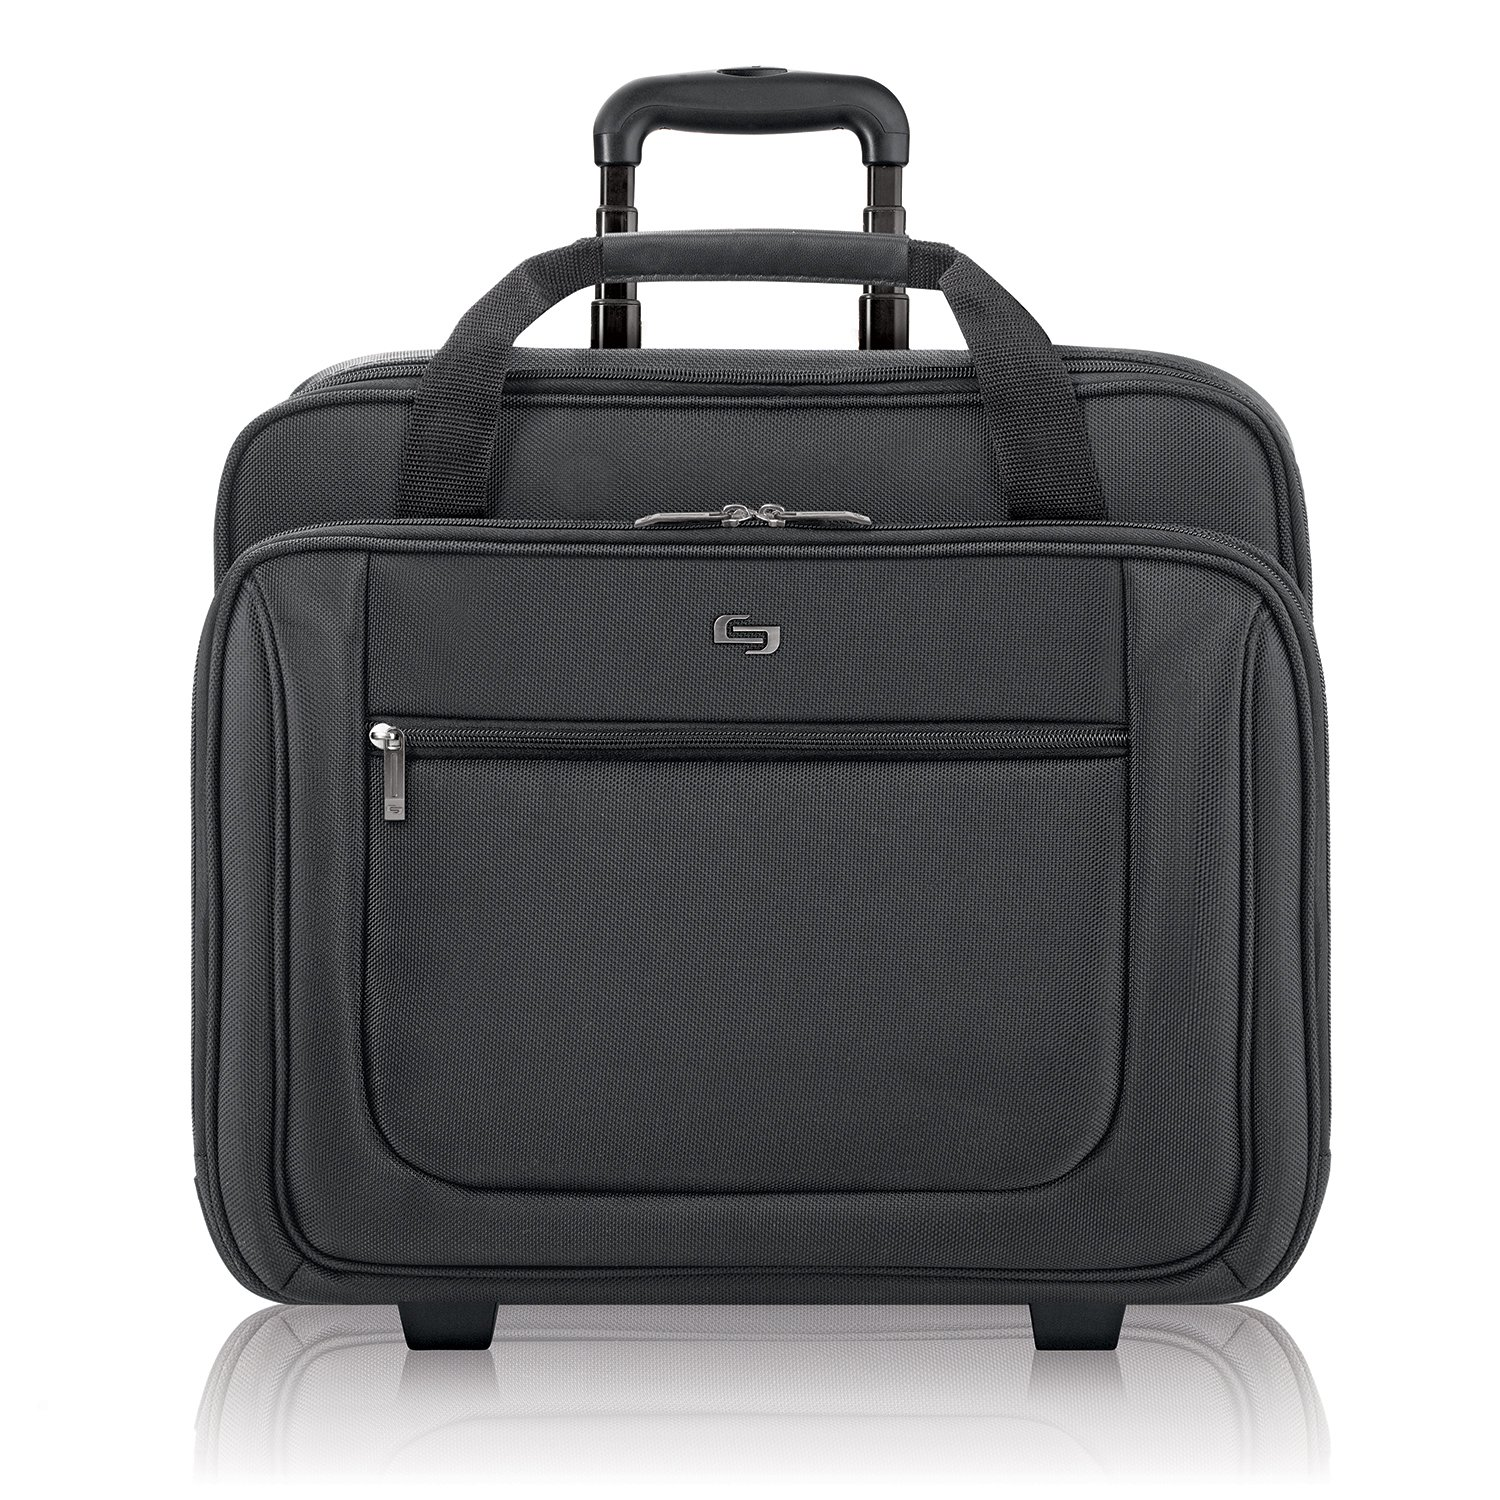 Solo Bryant 17.3 Inch Rolling Laptop Case, Black by SOLO